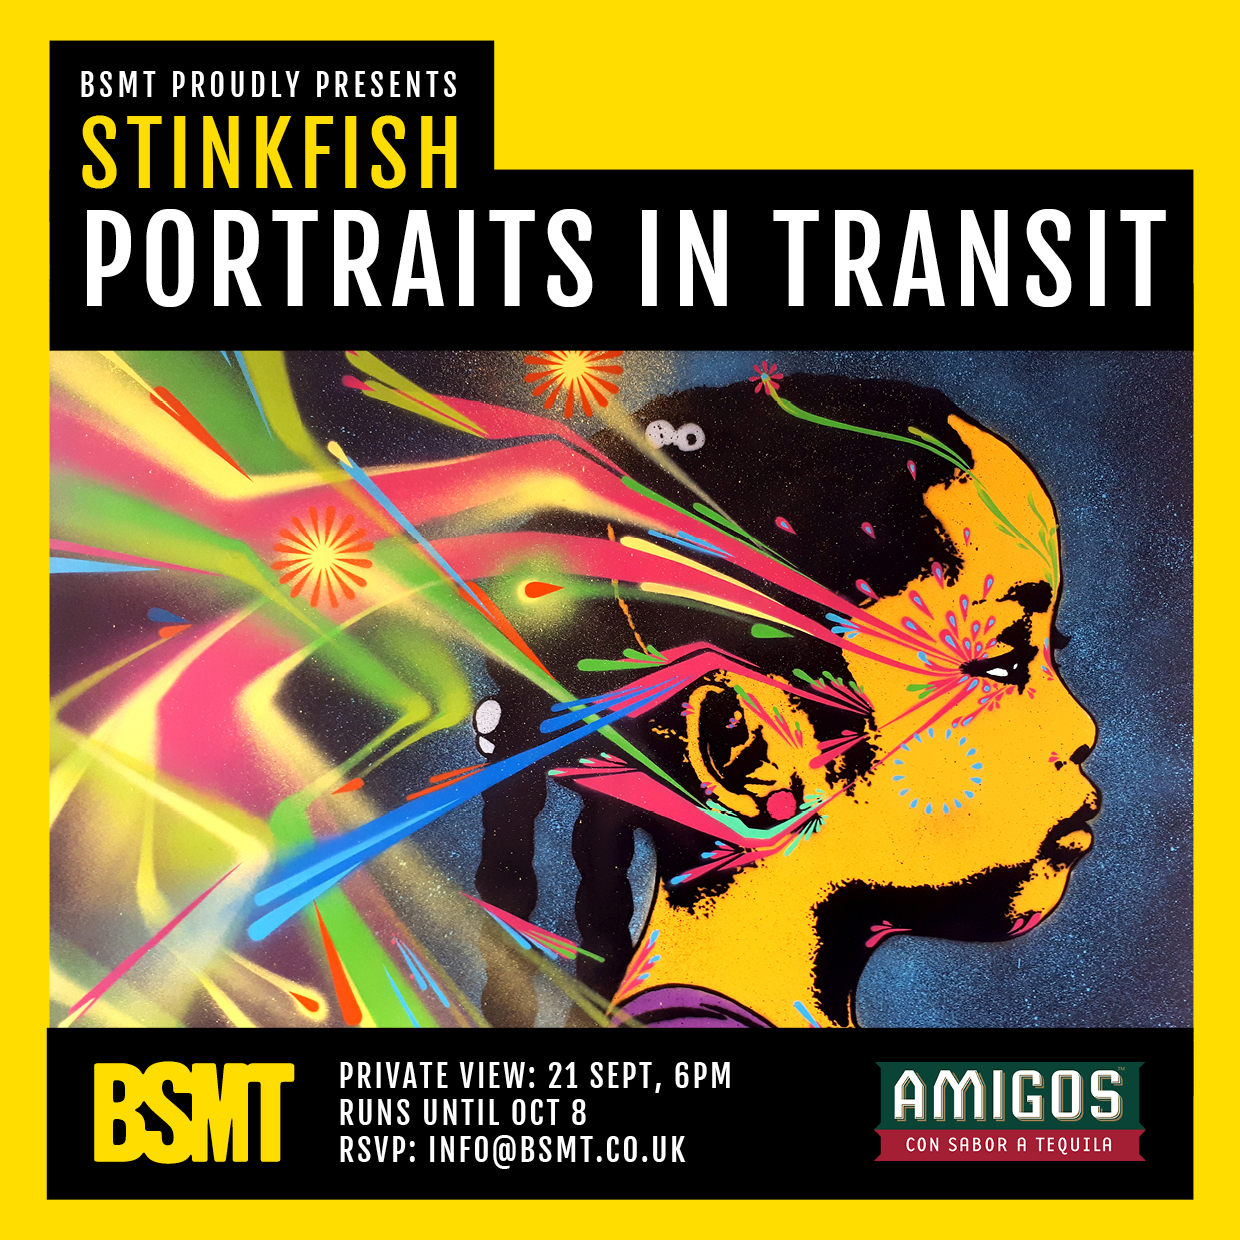 BSMT_Stinkfish Flyer_ART.jpg